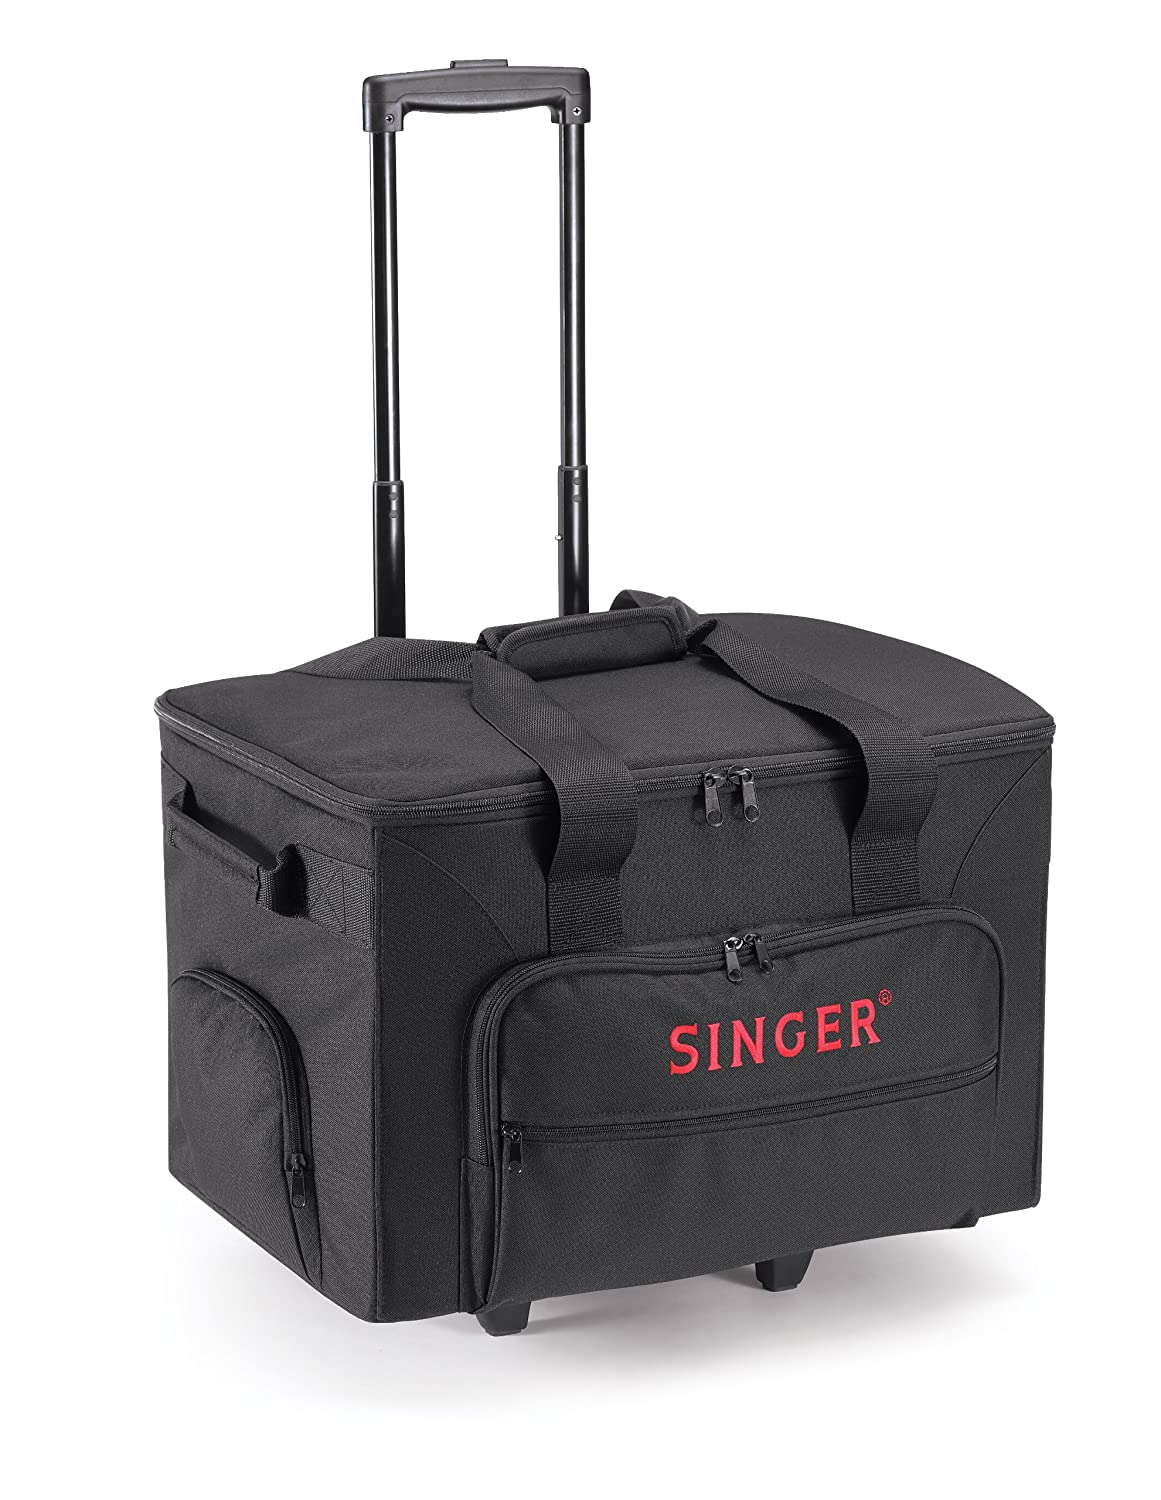 Singer rolling sewing machine accessories tote carry